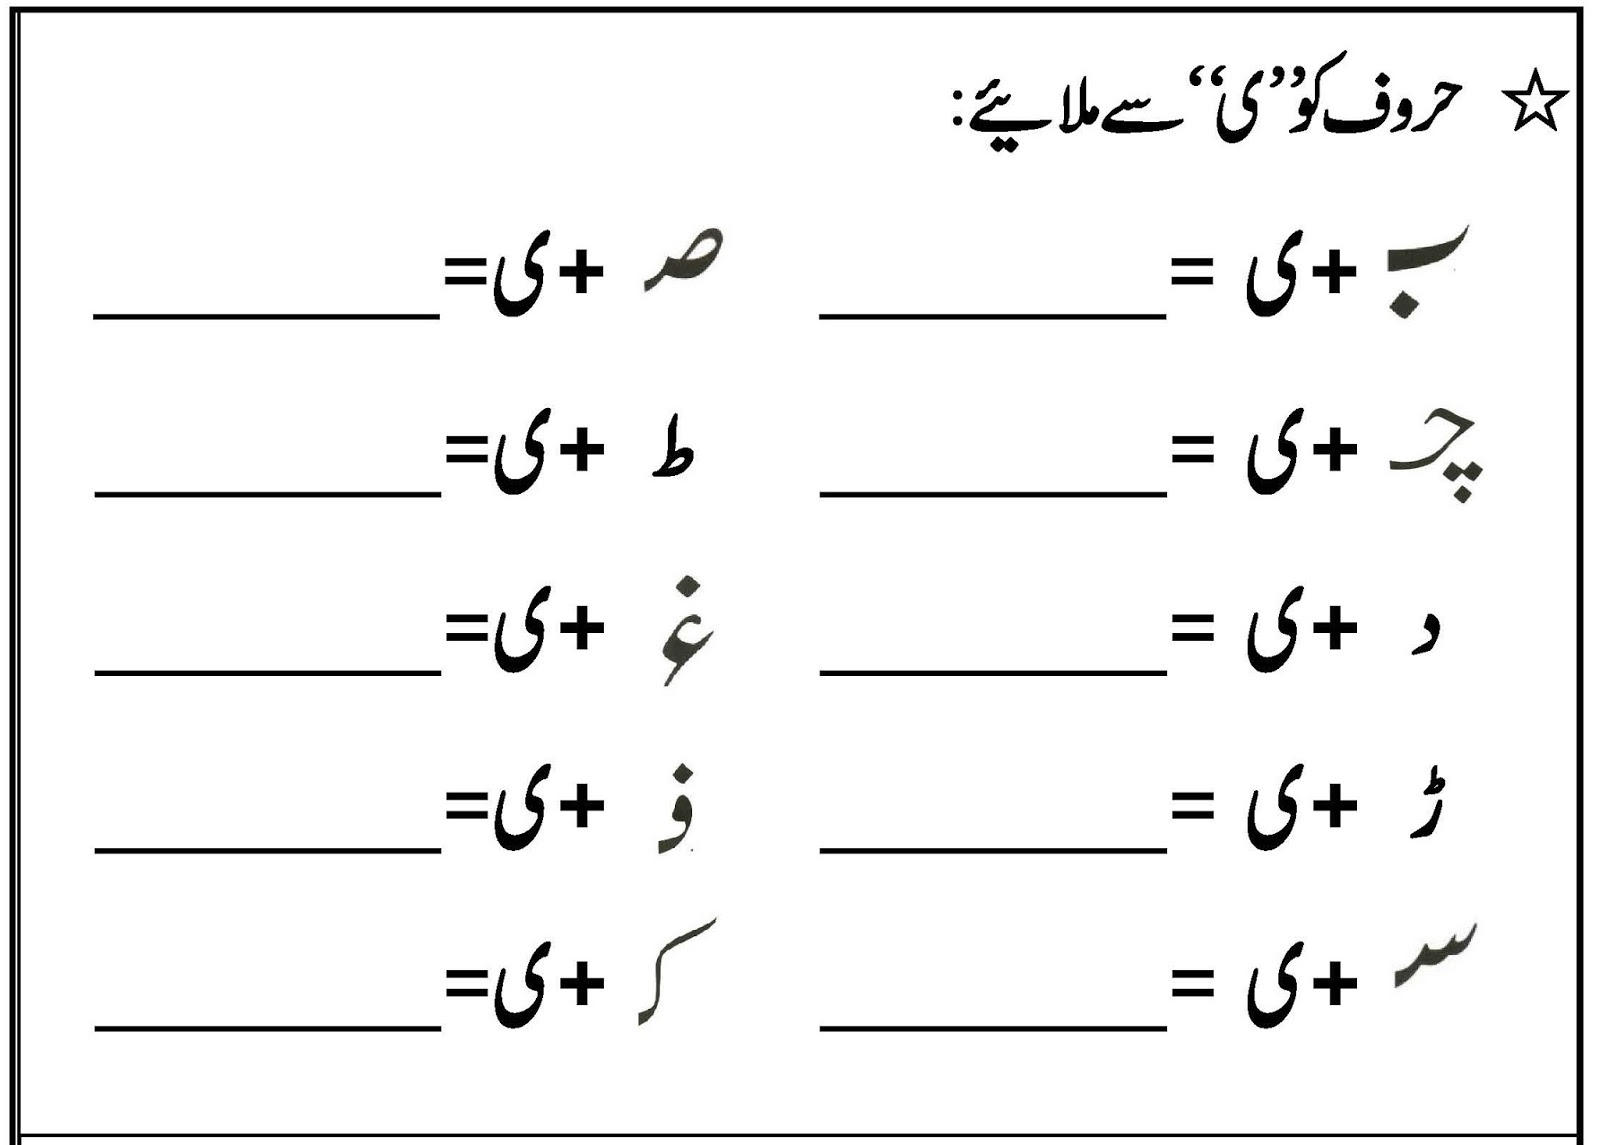 sr gulshan the city nursery ii math english and urdu worksheets. Black Bedroom Furniture Sets. Home Design Ideas